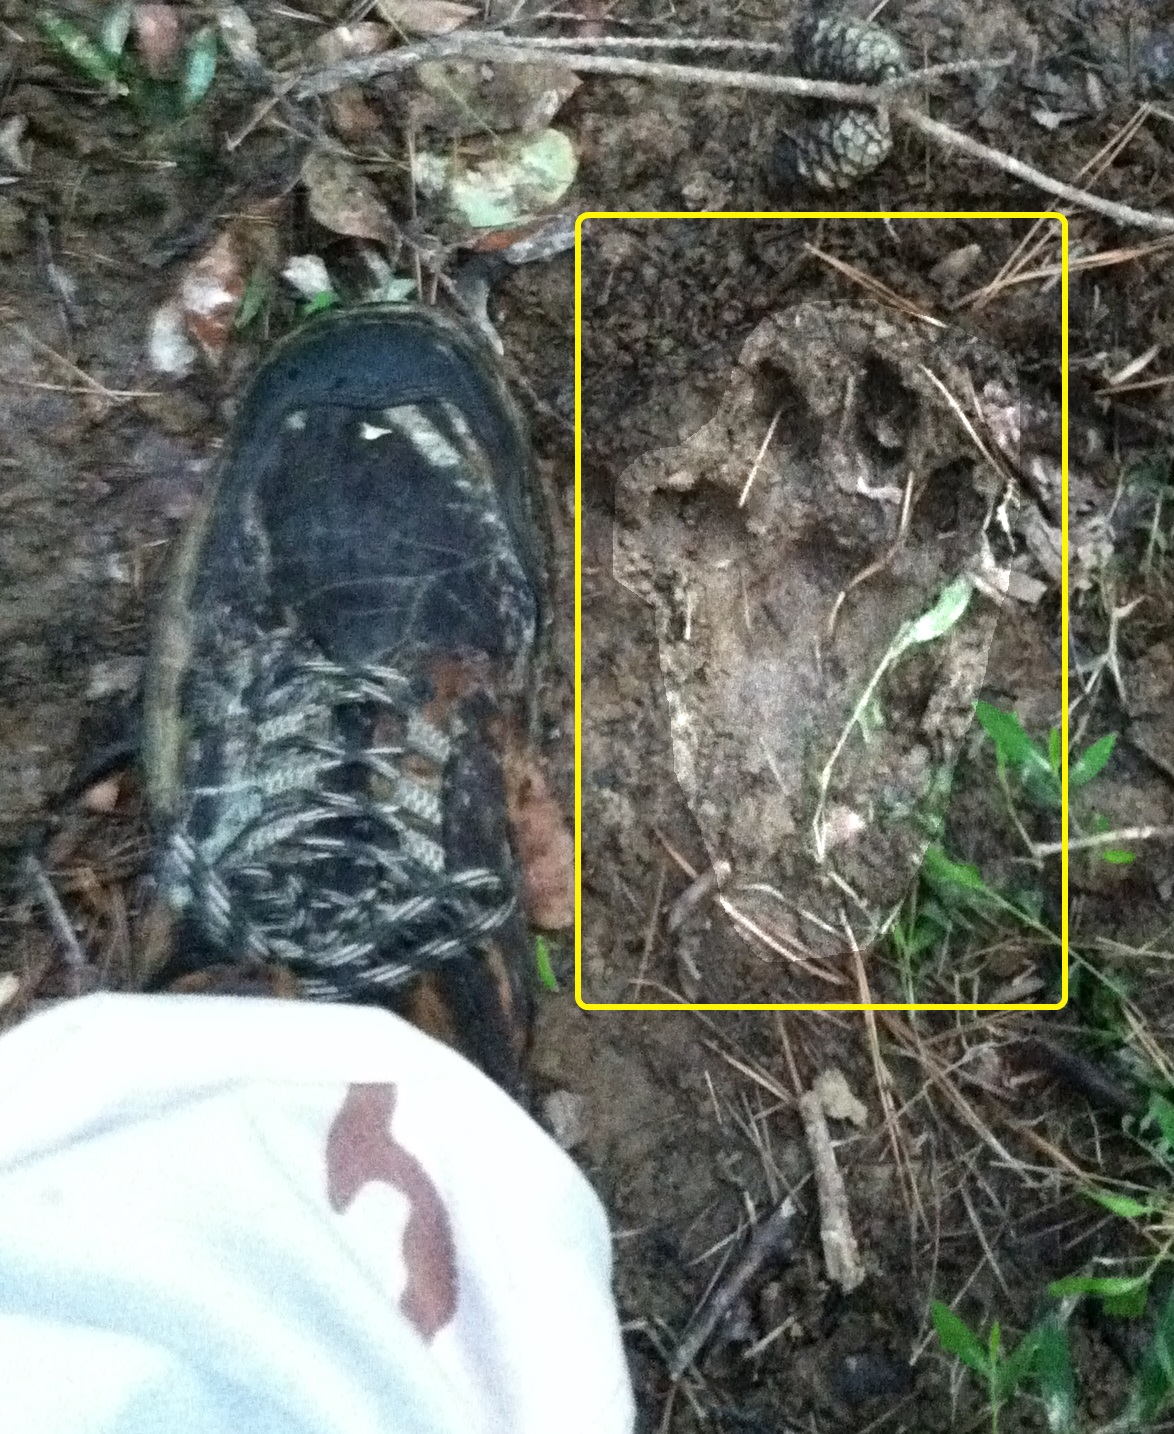 Dogman - The Monsters are Real: Dogman - Footprints